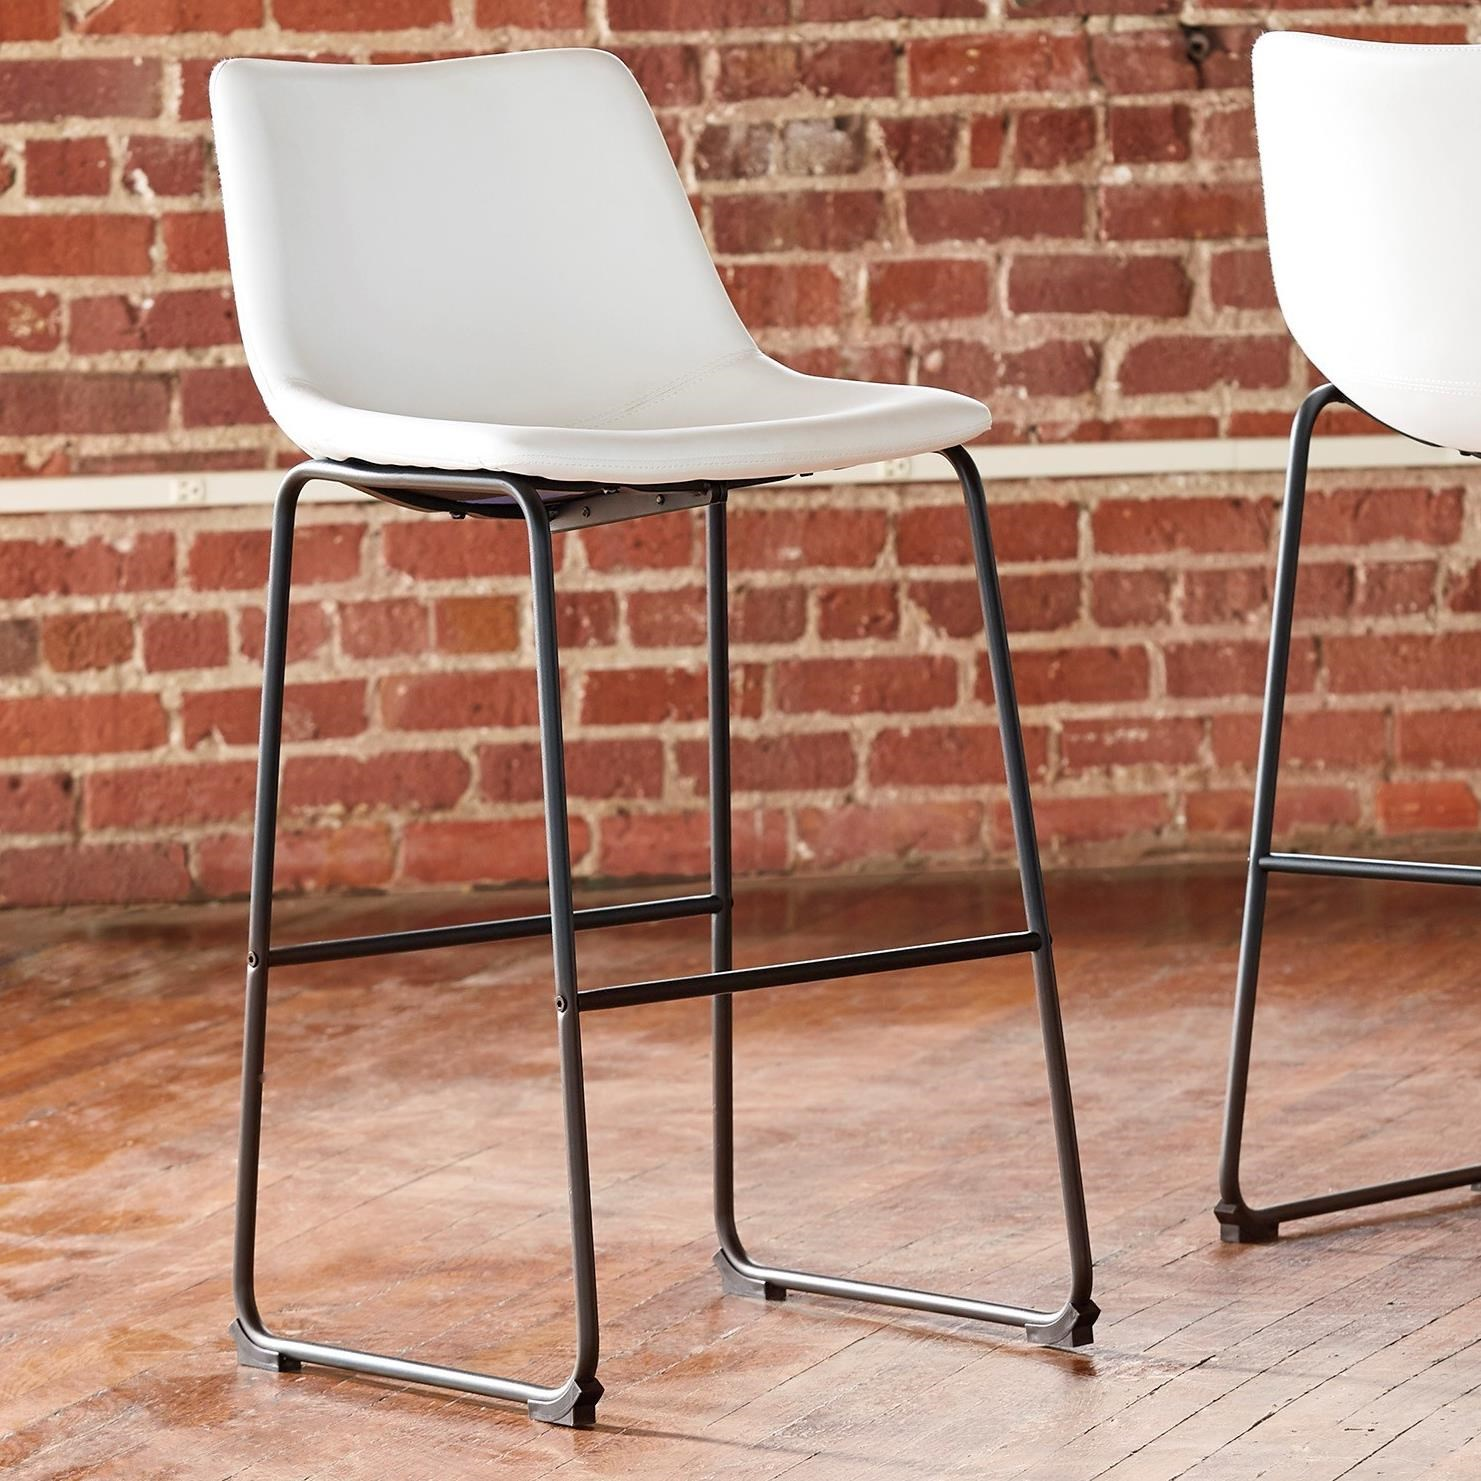 Centiar Tall Upholstered Barstool by Ashley (Signature Design) at Johnny Janosik